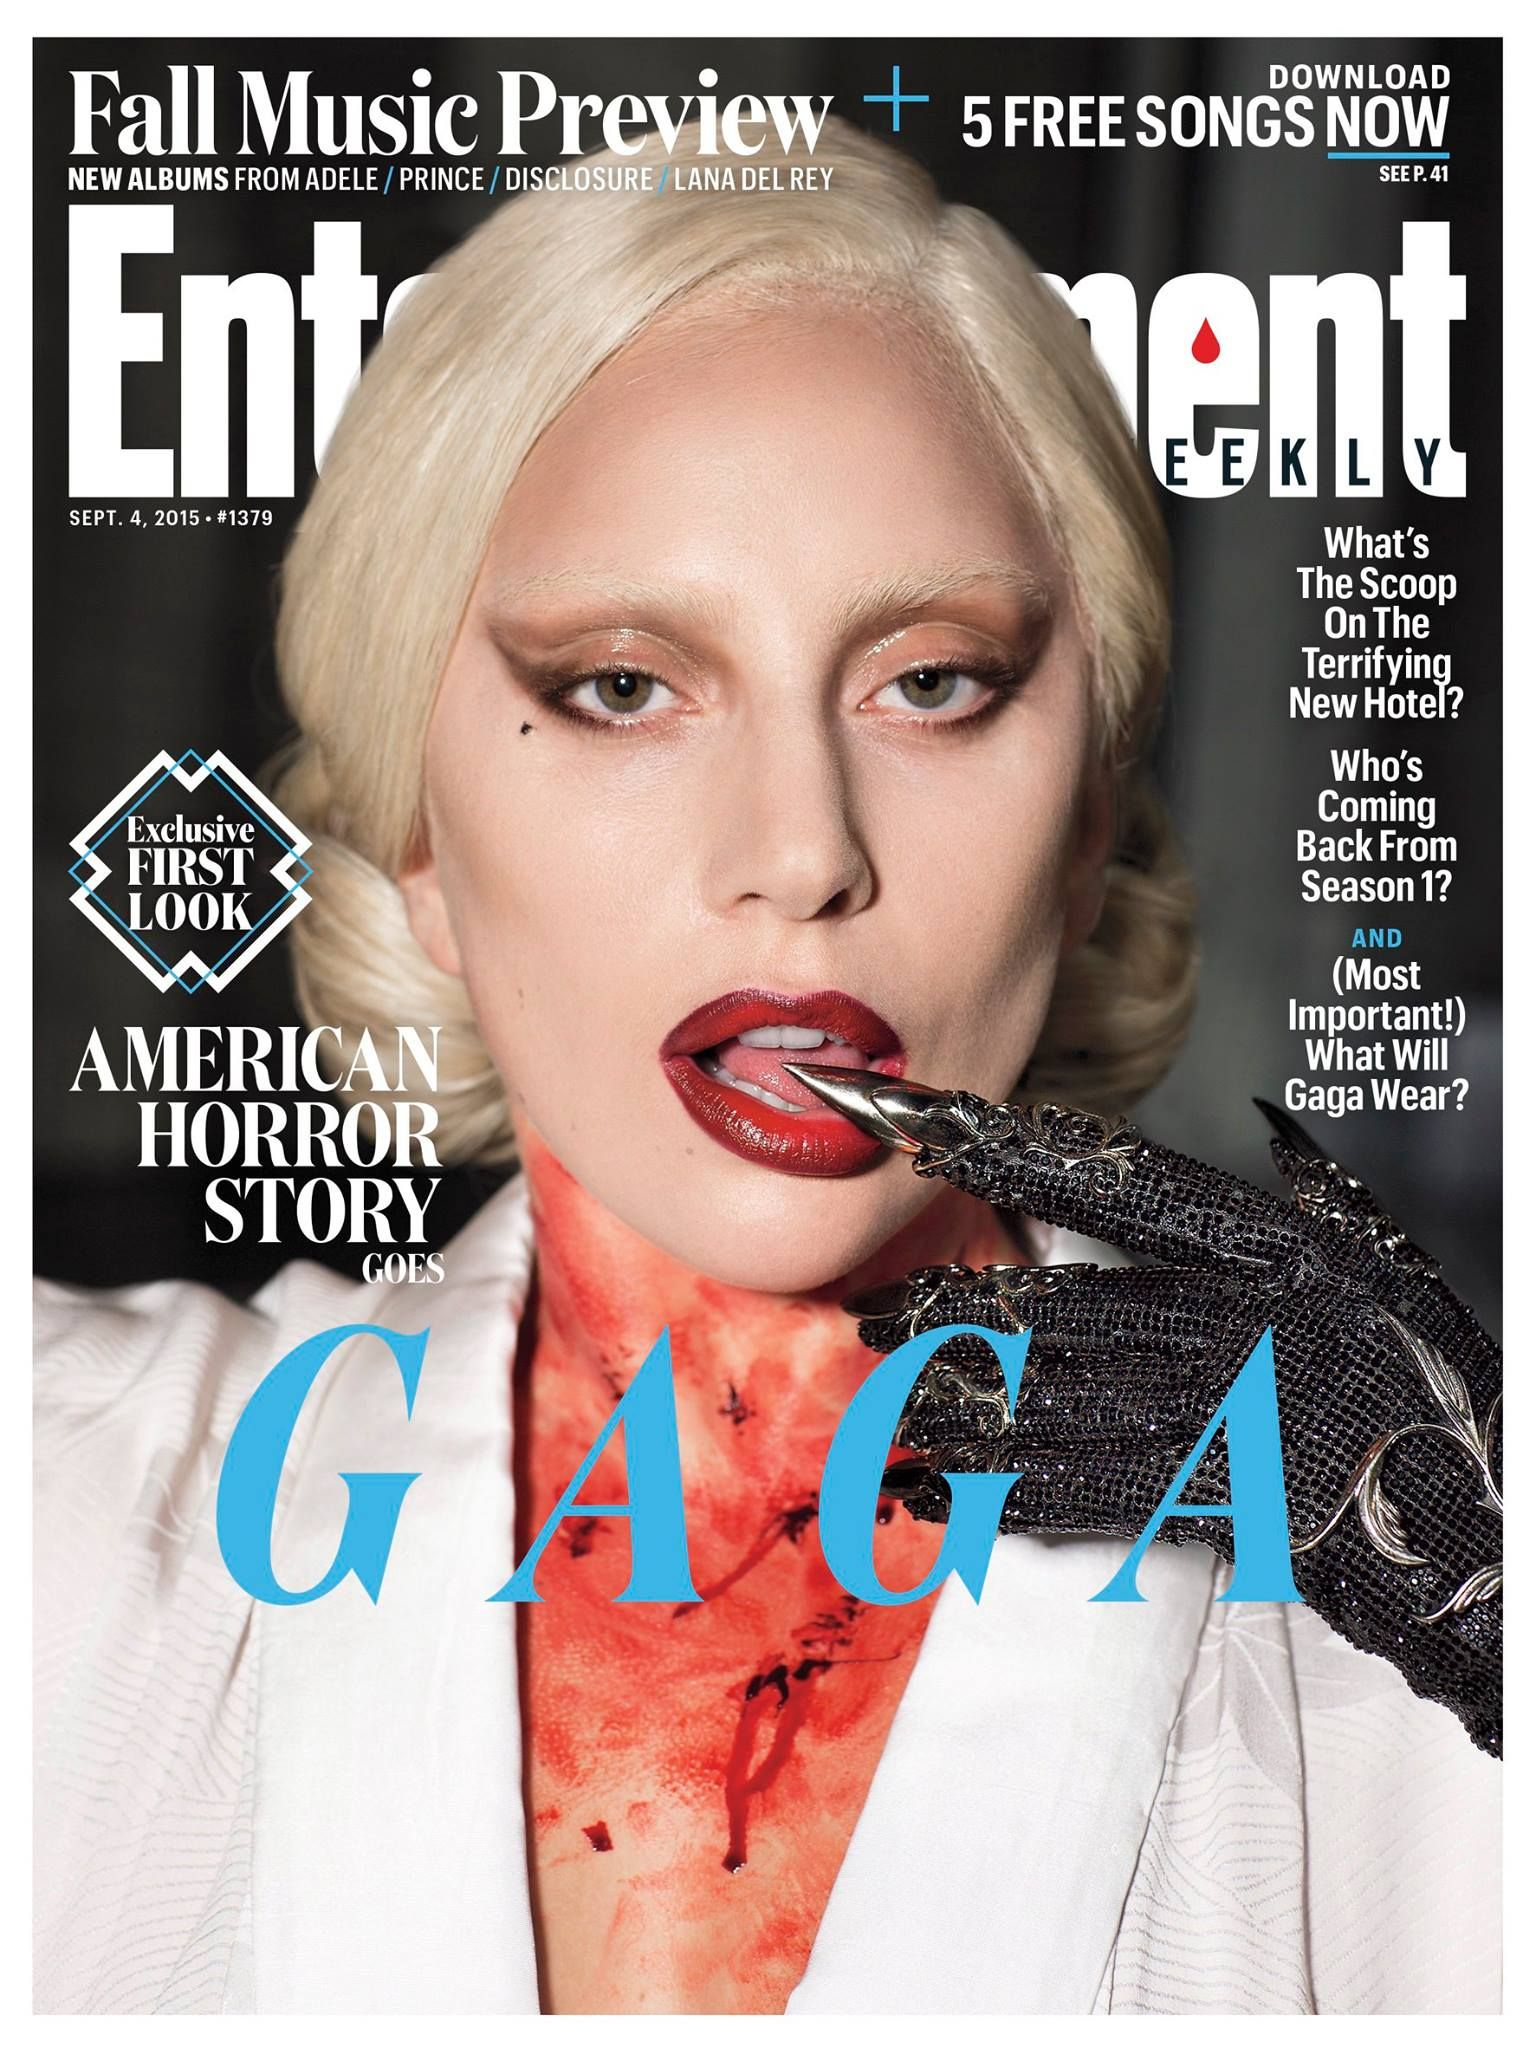 Lady Gaga On The Cover Of Entertainment Weekly September 2017